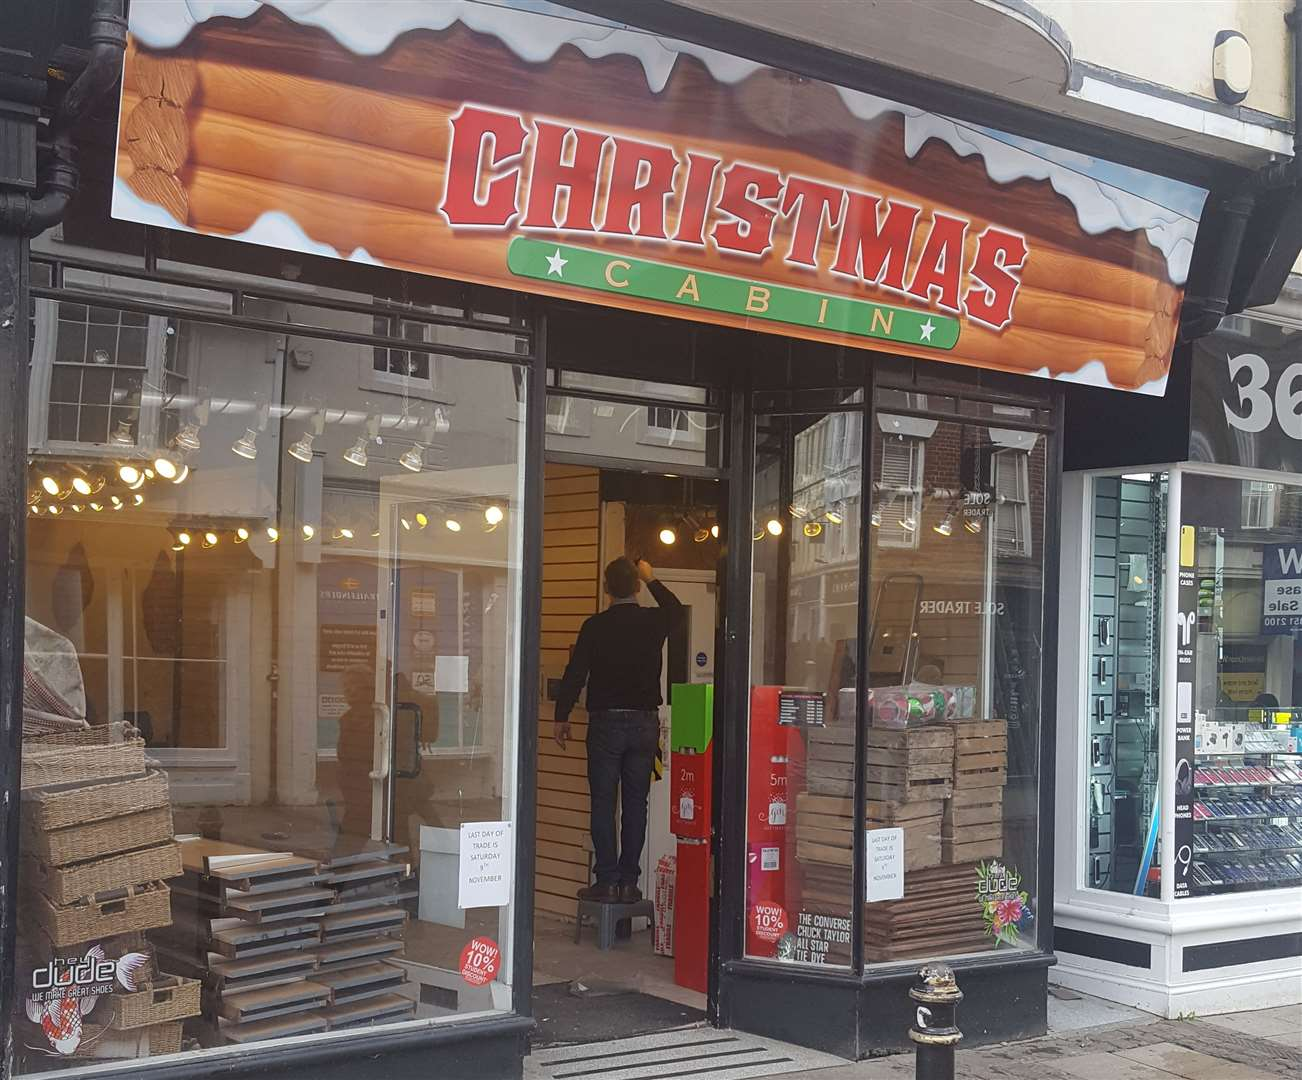 A new shop called Christmas Cabin is opening up on the site (21367282)